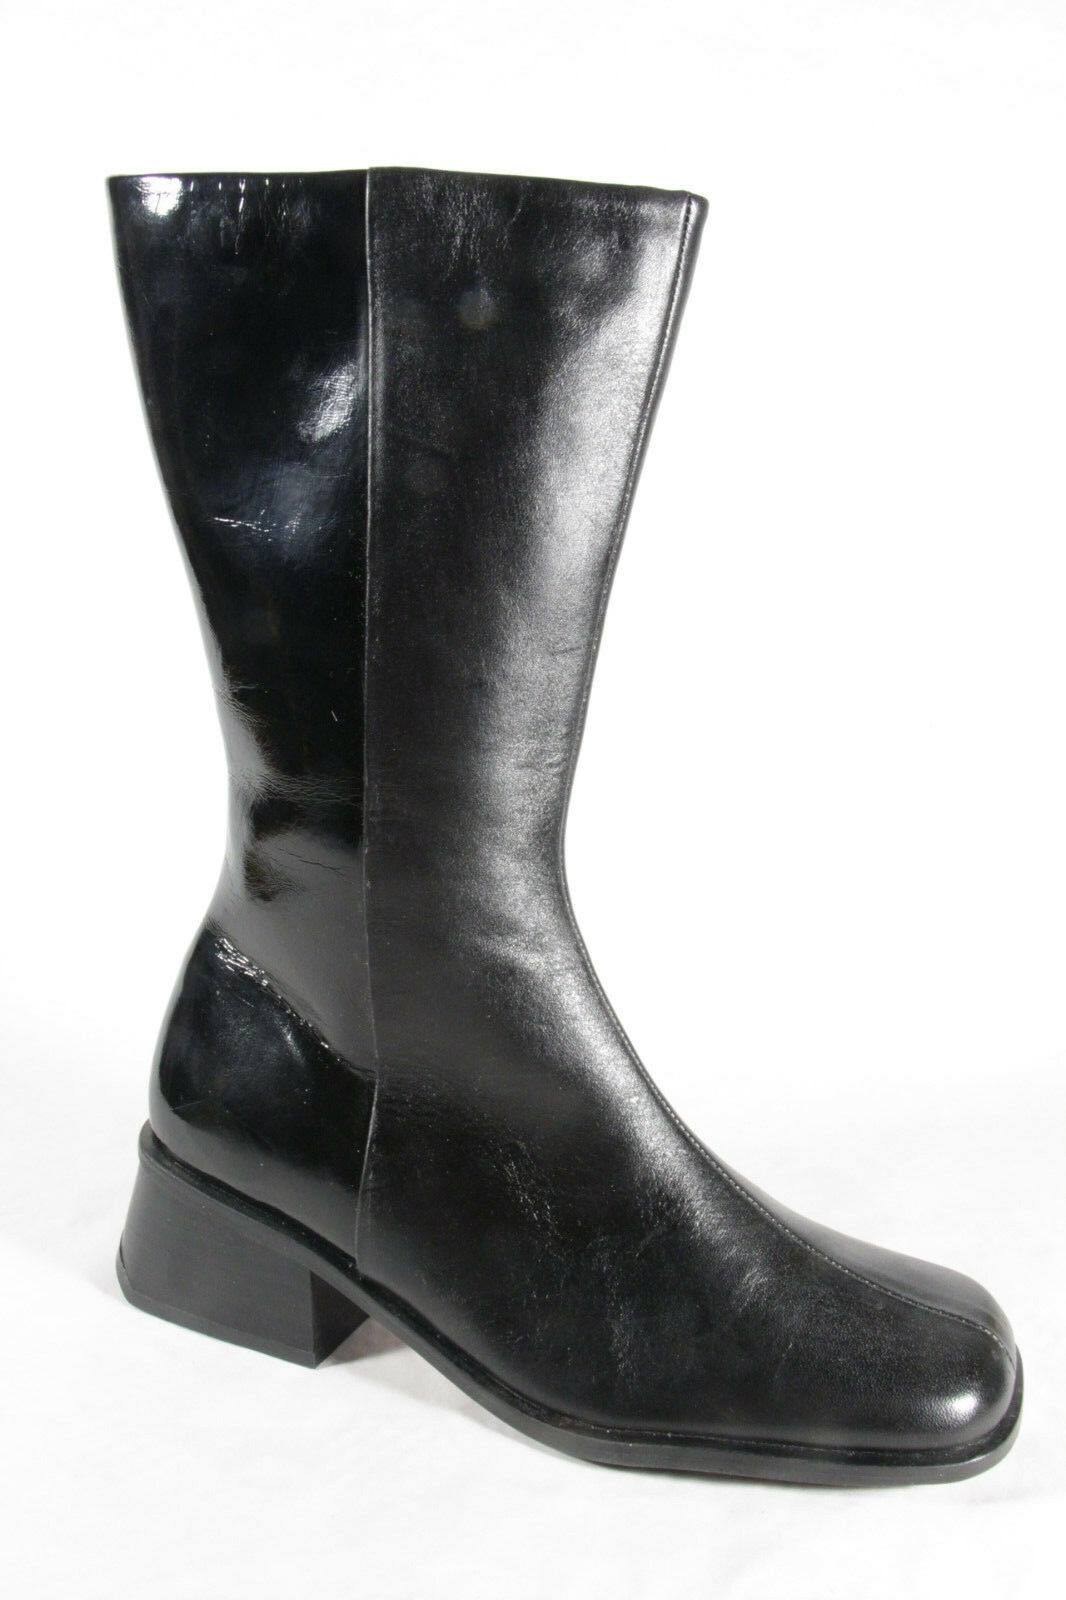 Gino Ventori Ventori Ventori Women's Ankle Boots Ankle Boots Black Real Leather New d0b58a